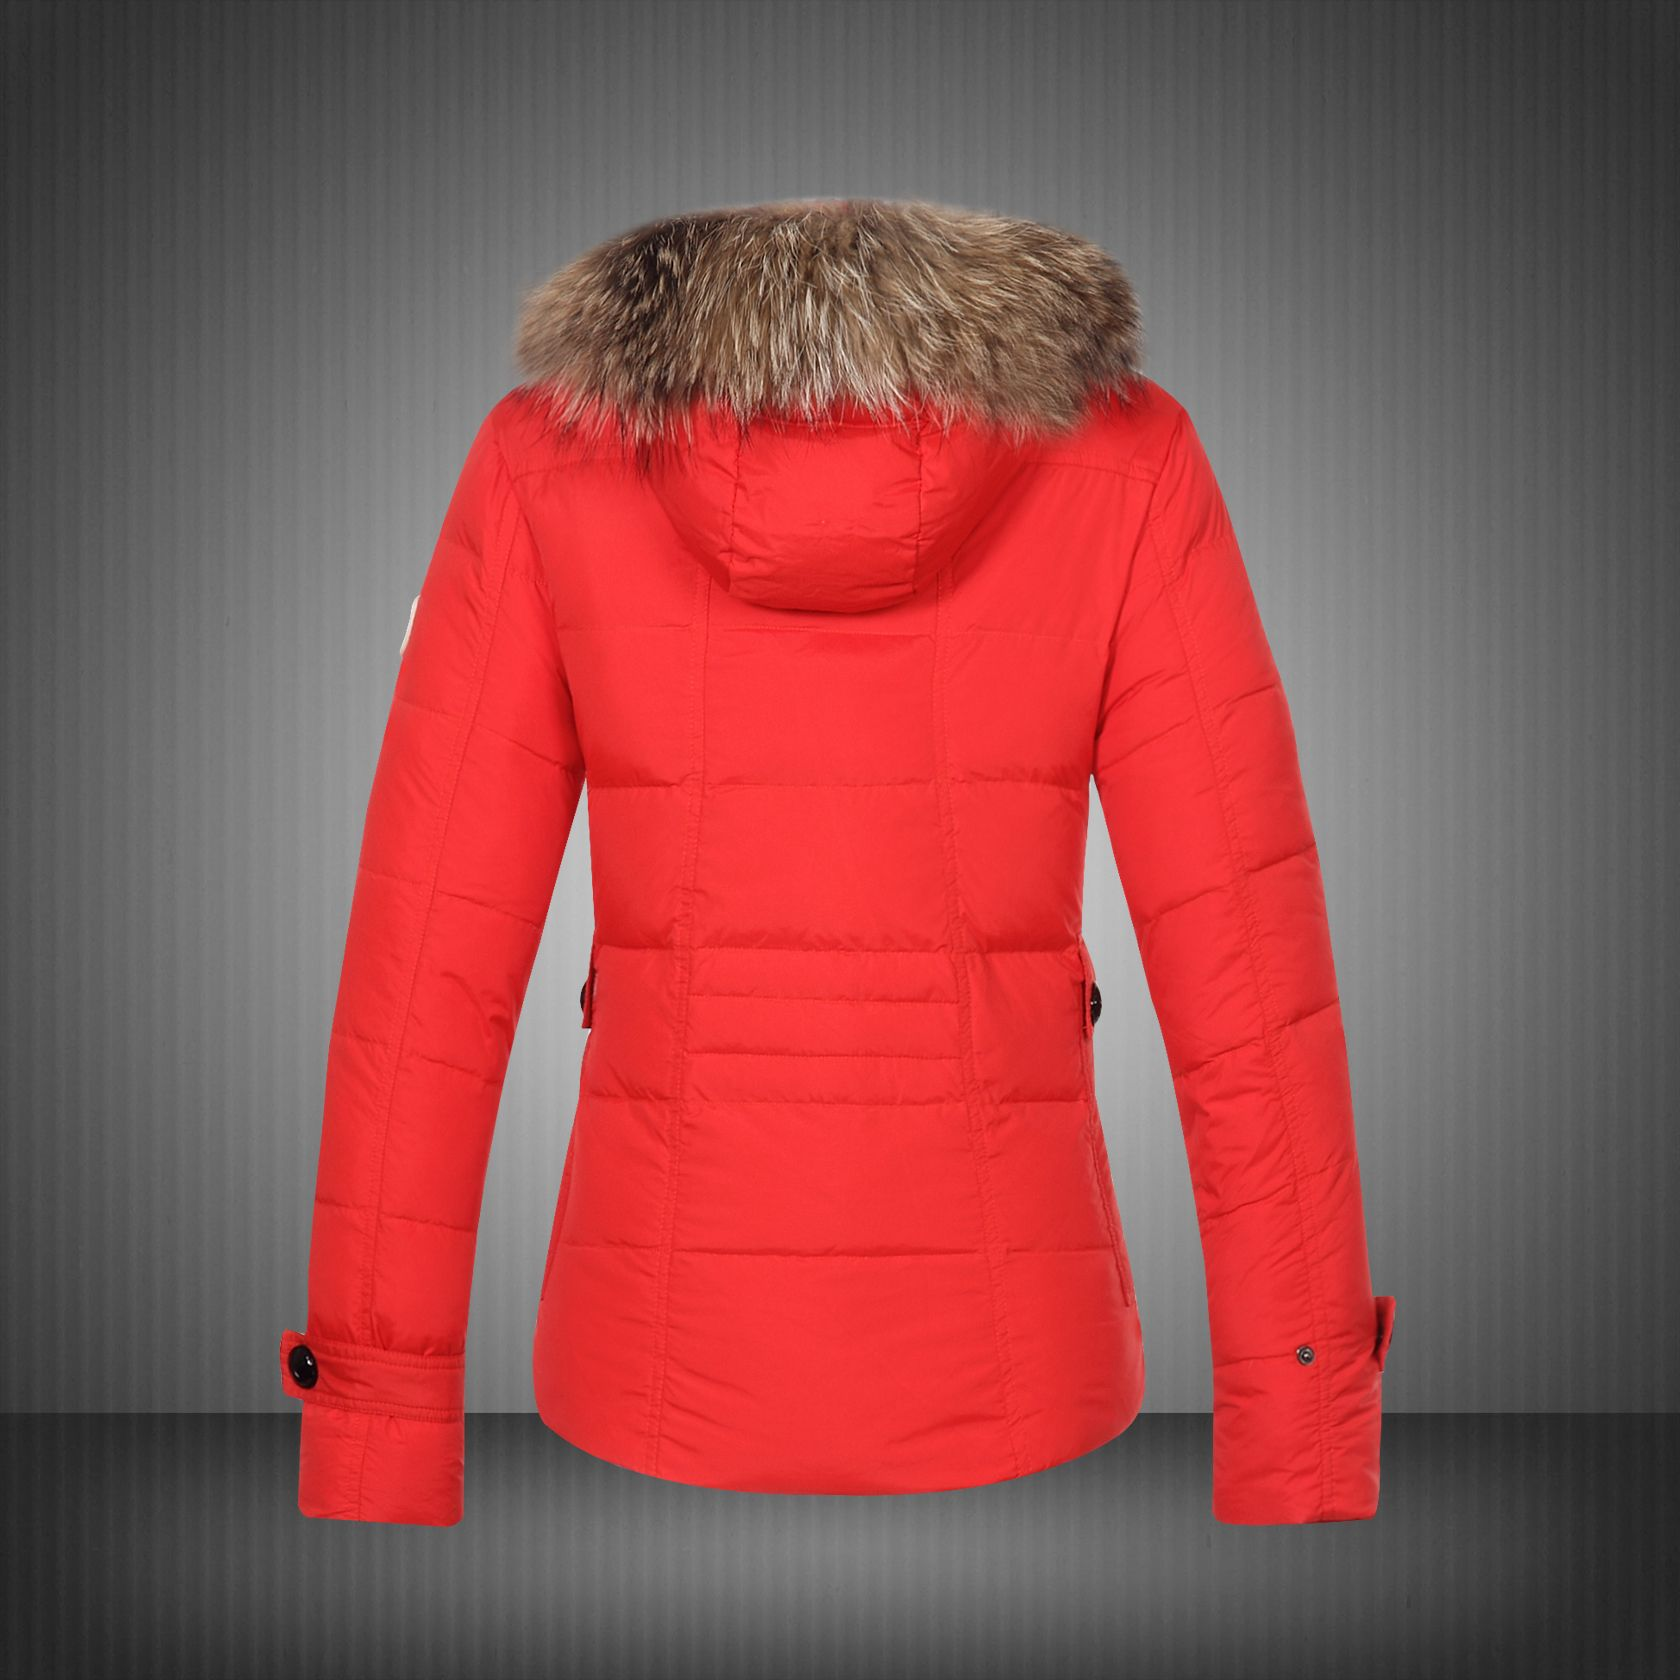 2014 Moncler Bryone Down Jacket For Women Red New Arrival